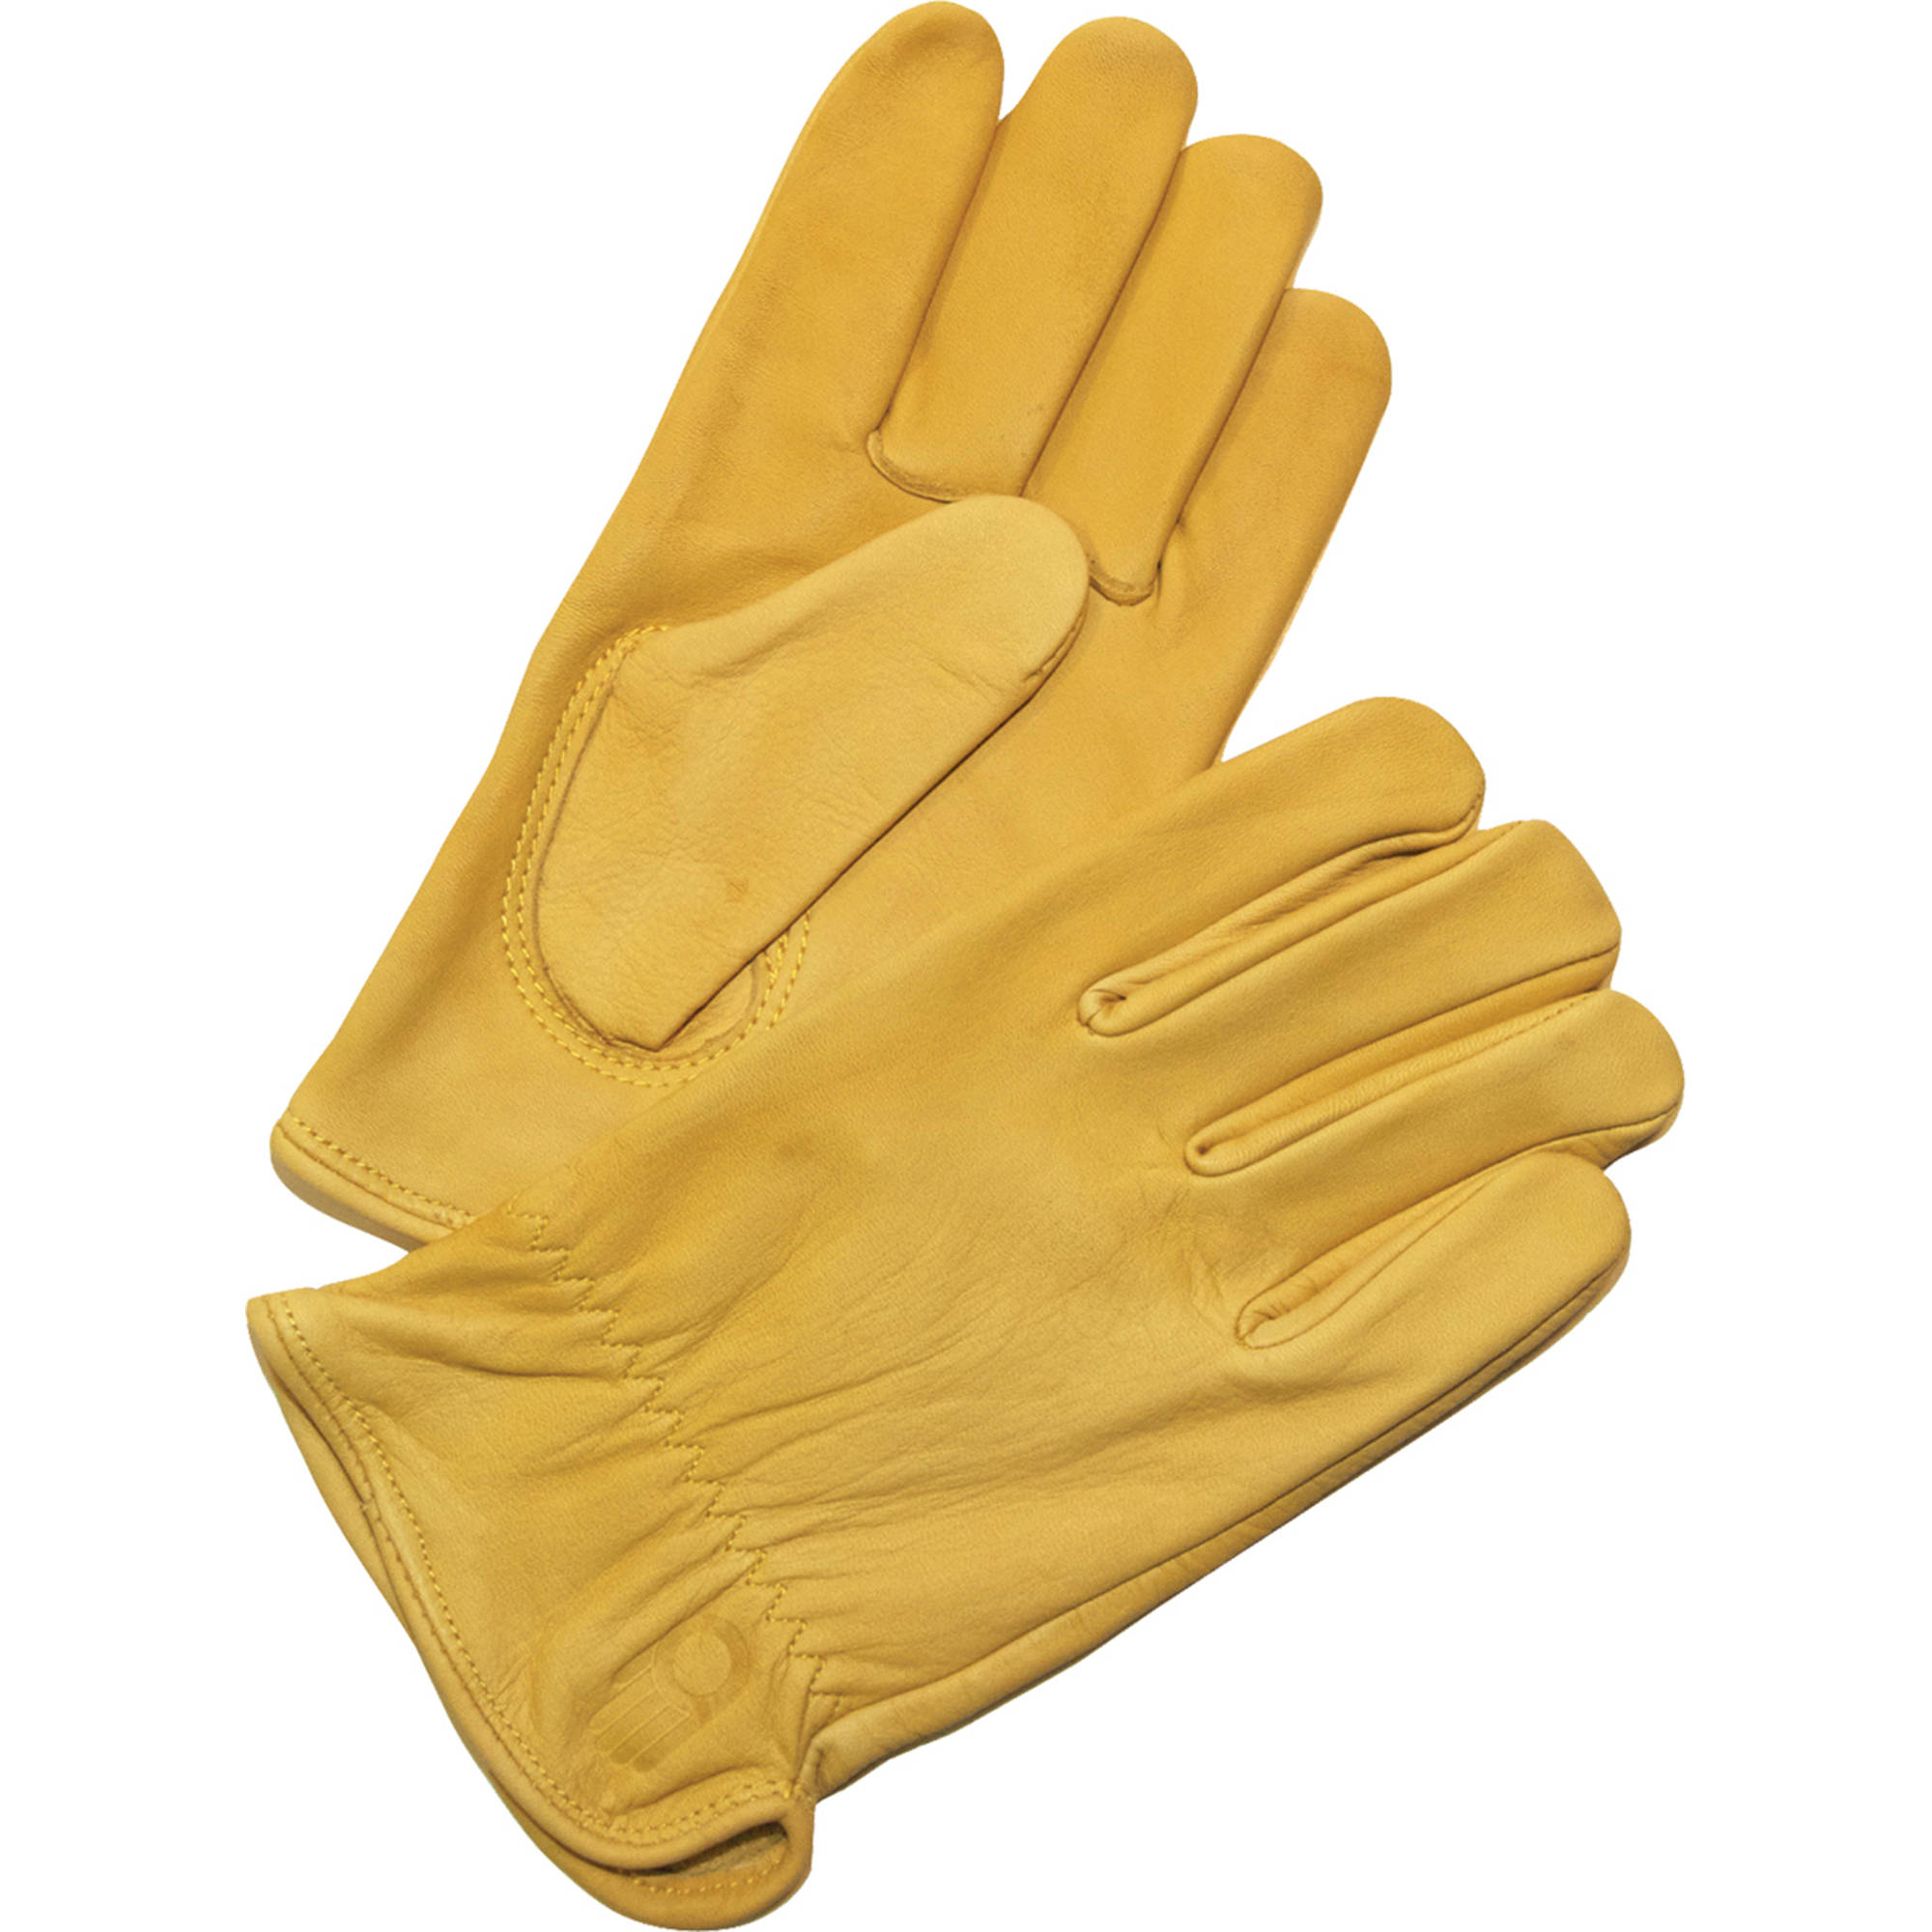 Bellingham Glove C2353S Small Ladies Leather Driving Gloves